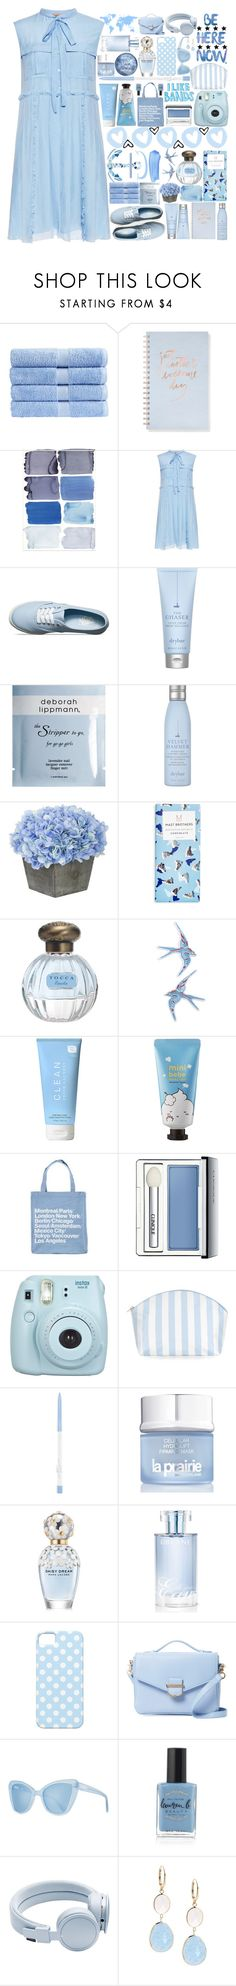 """""""pleated blue"""" by gately ❤ liked on Polyvore featuring Christy, Fringe, N°21, Vans, Drybar, Deborah Lippmann, Topshop, CLEAN, Sephora Collection and TheLeesW"""